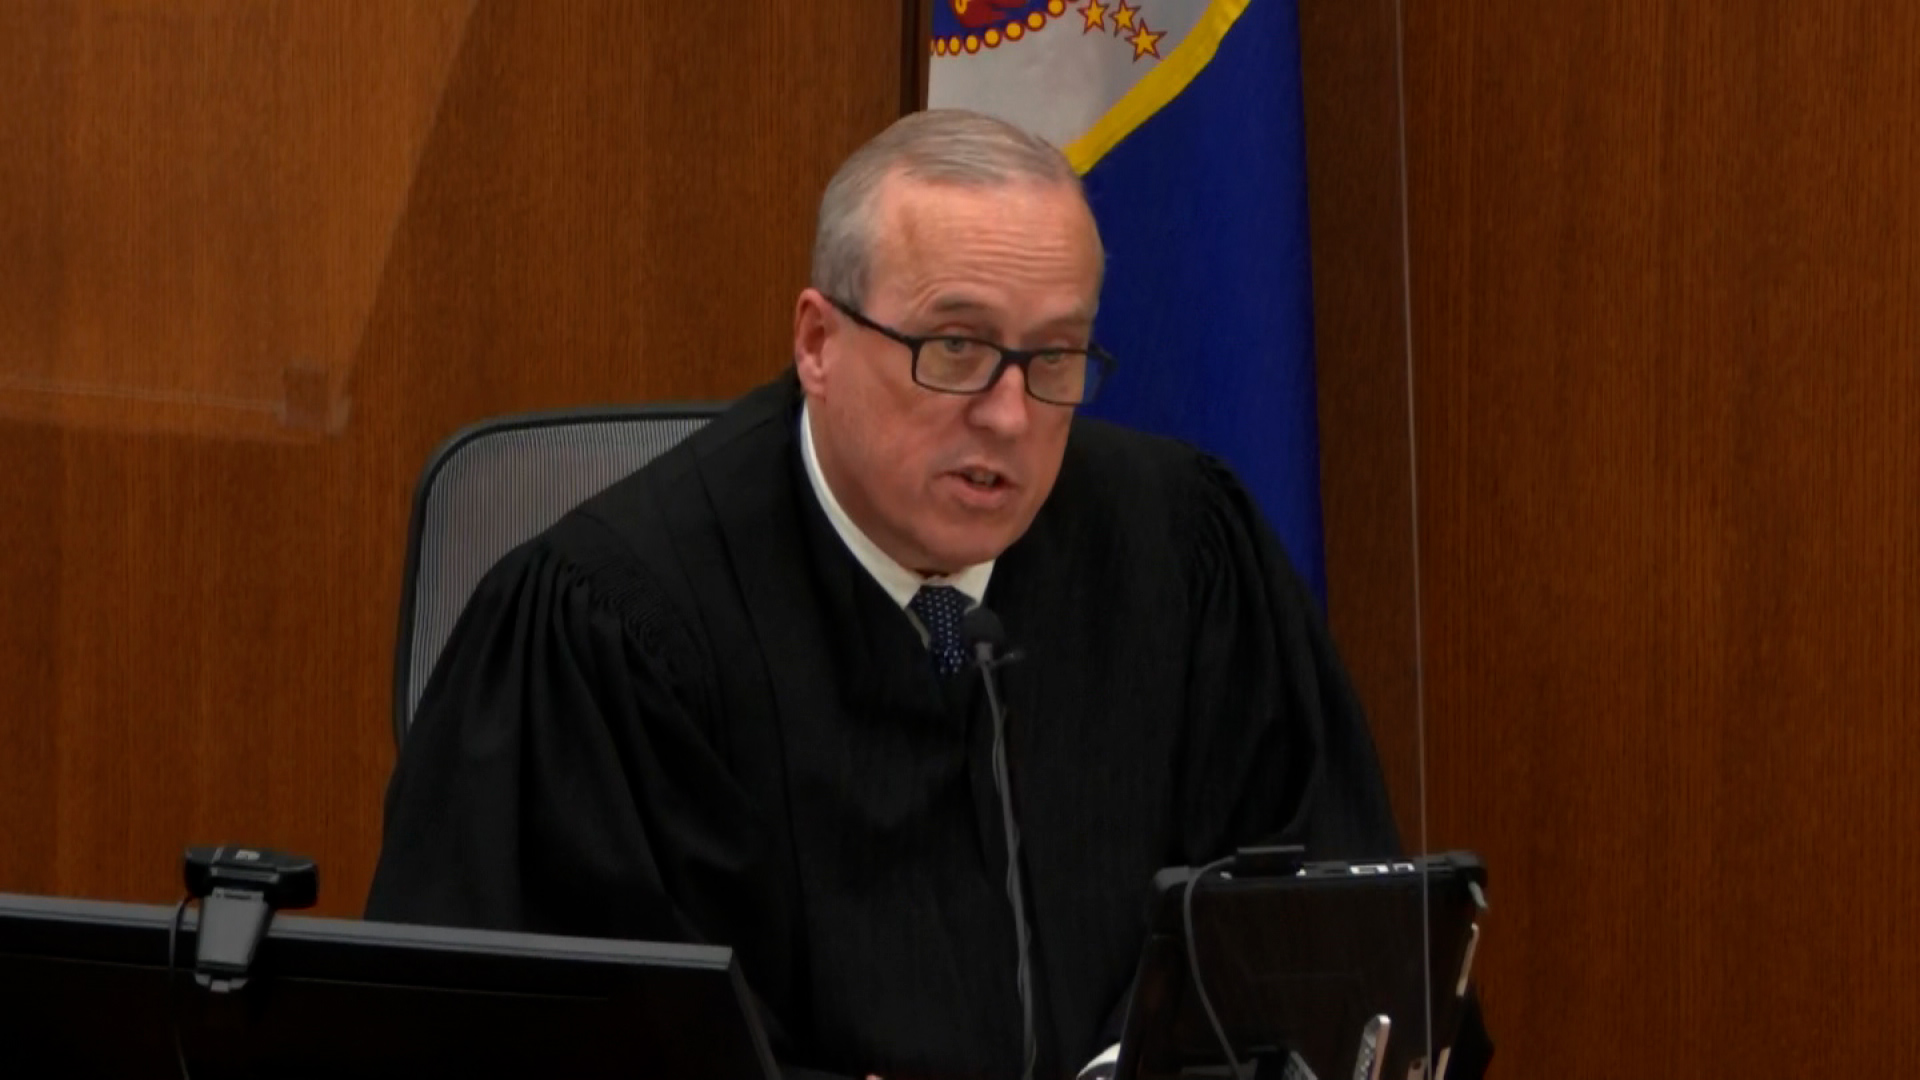 Judge outlines 4 key things jury must do when deliberating on the case